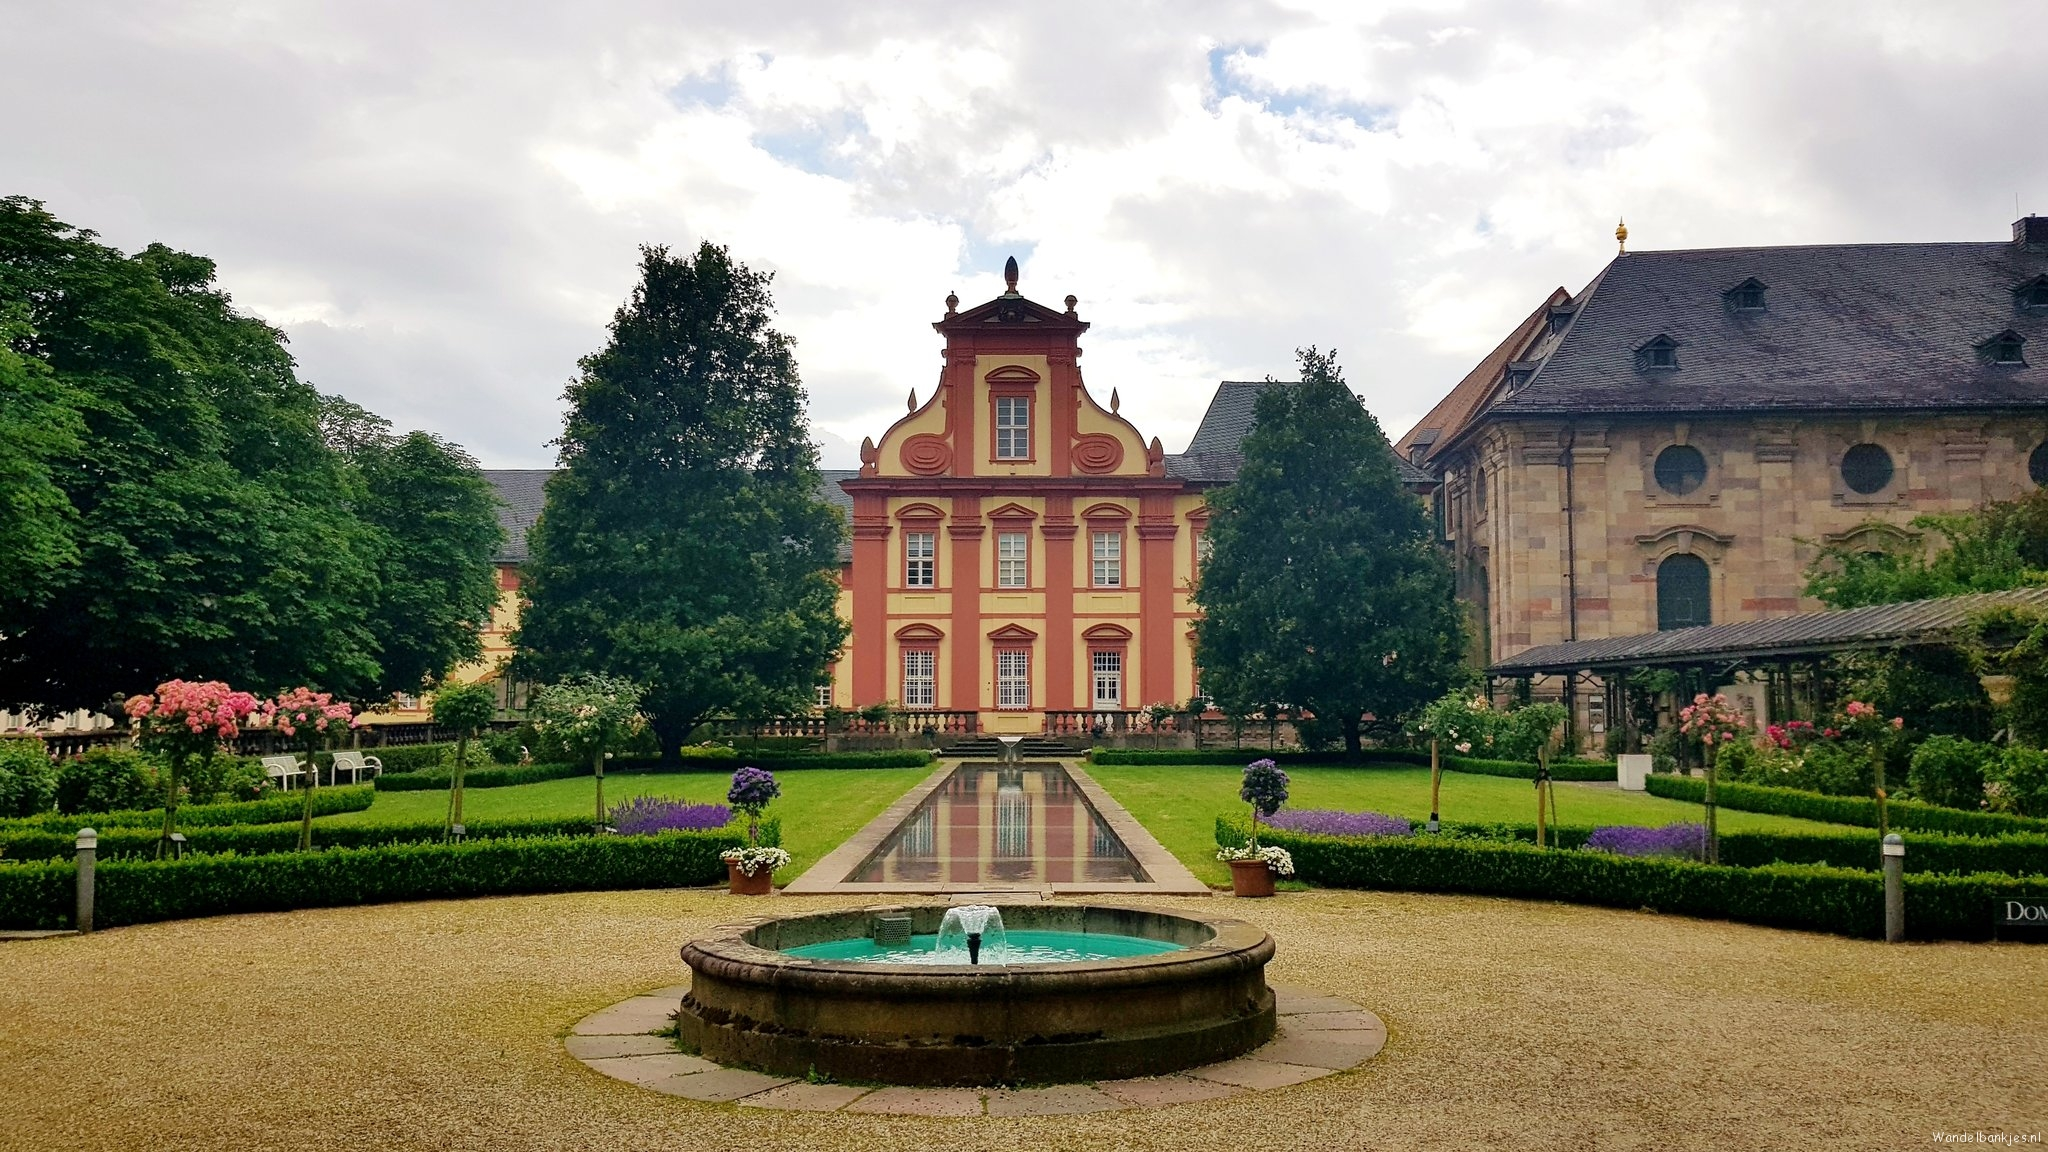 rt-wolfswandelplan-dommuseum-in-fulda-walking-benches-https-t-co-1mr8mmplfb